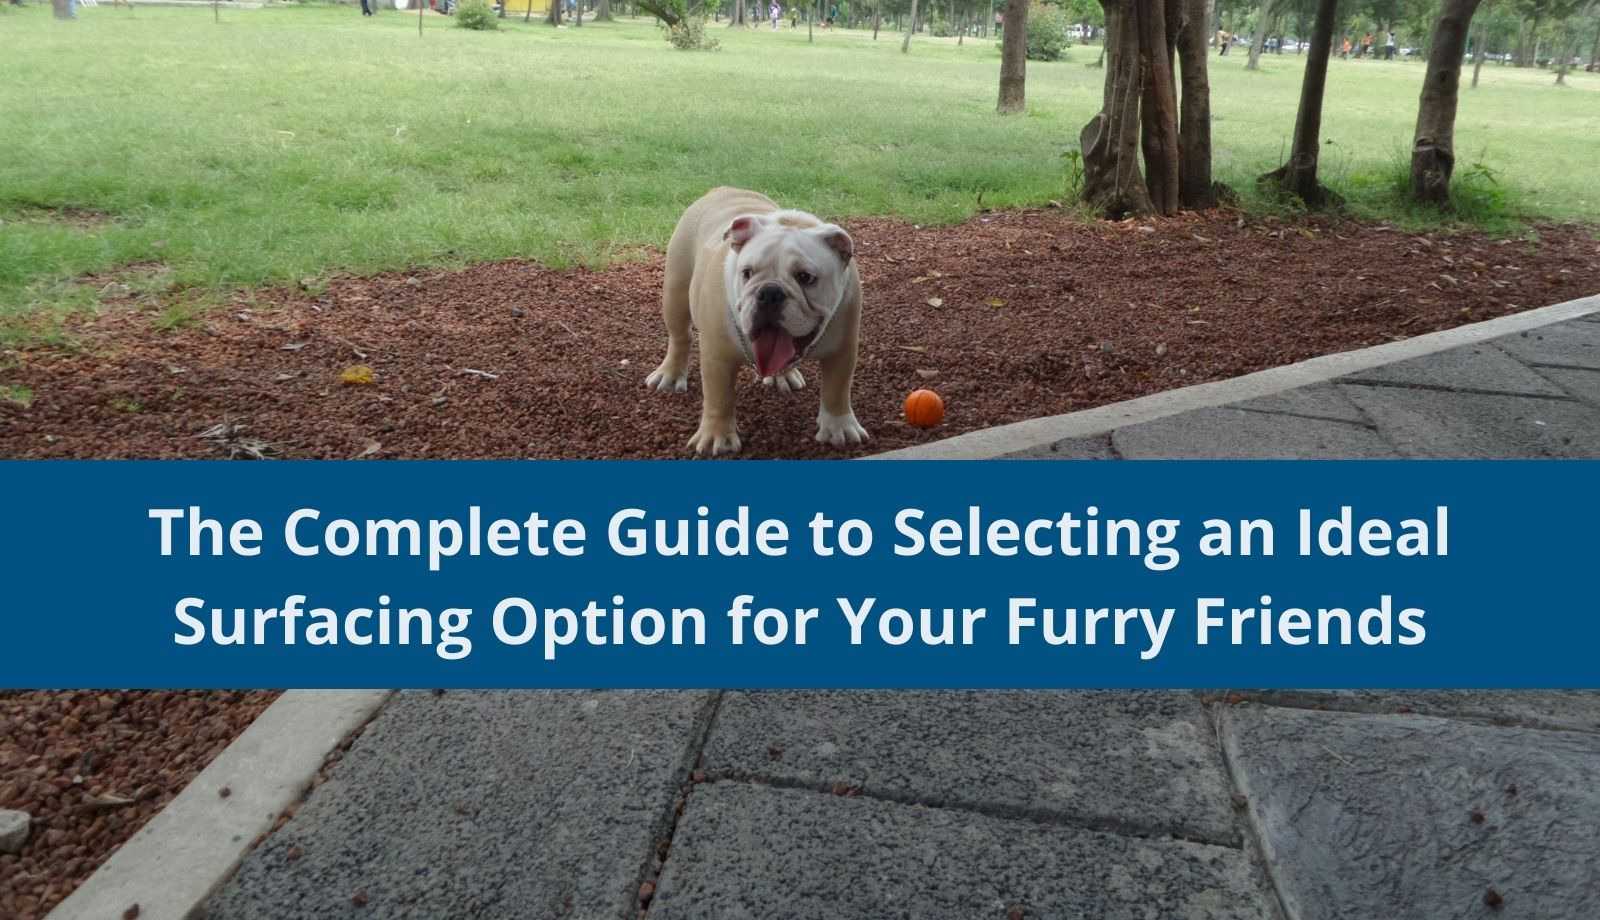 The Complete Guide to Selecting an Ideal Surfacing Option for Your Furry Friends